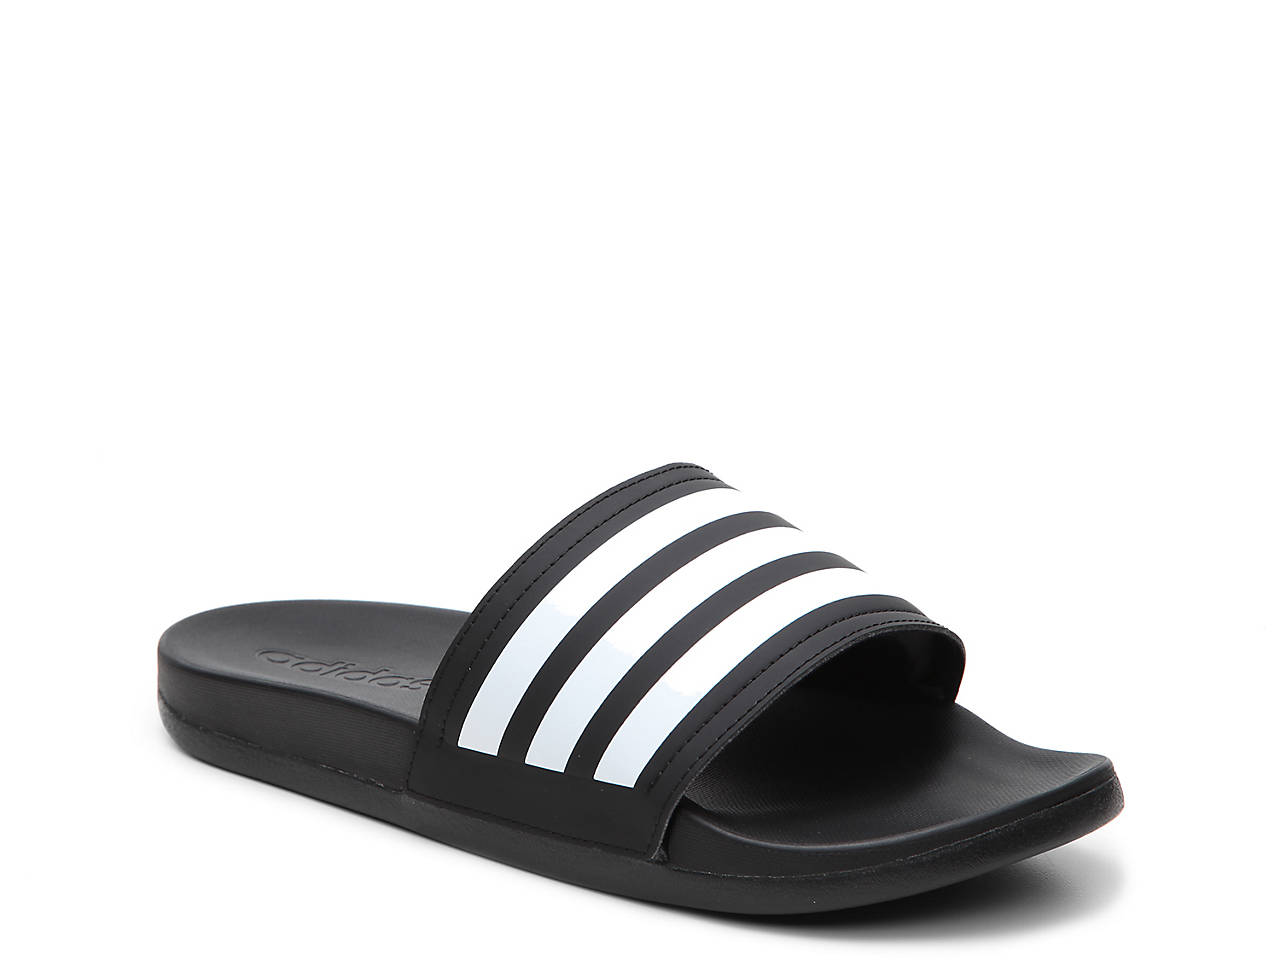 premium selection 0f5b8 92fa4 adidas. Adilette Cloudfoam Ultra Stripes Slide Sandal - Womens